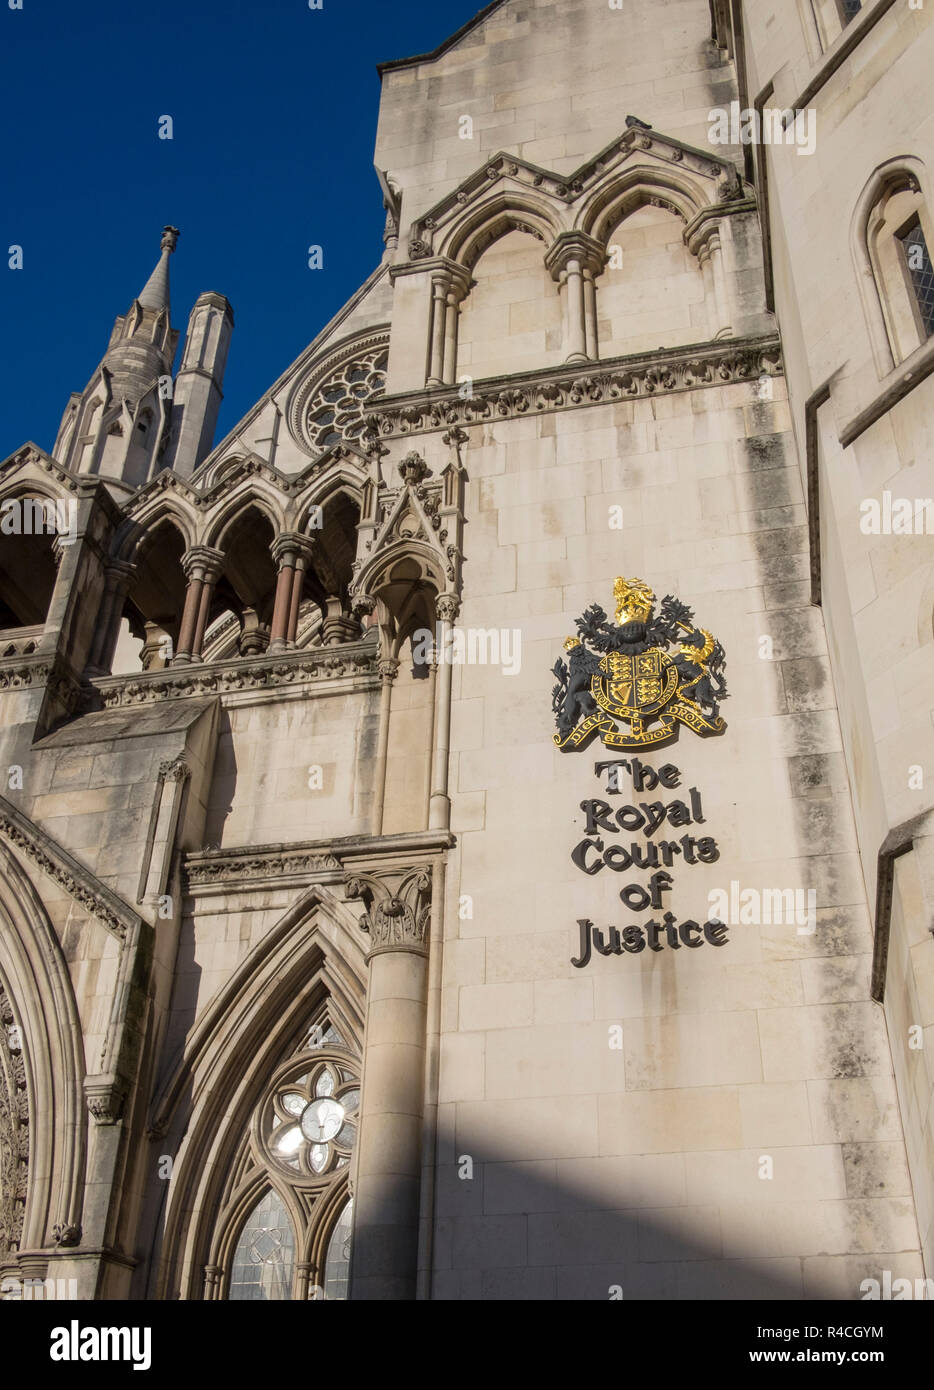 The Royal Courts of Justice, London - Stock Image